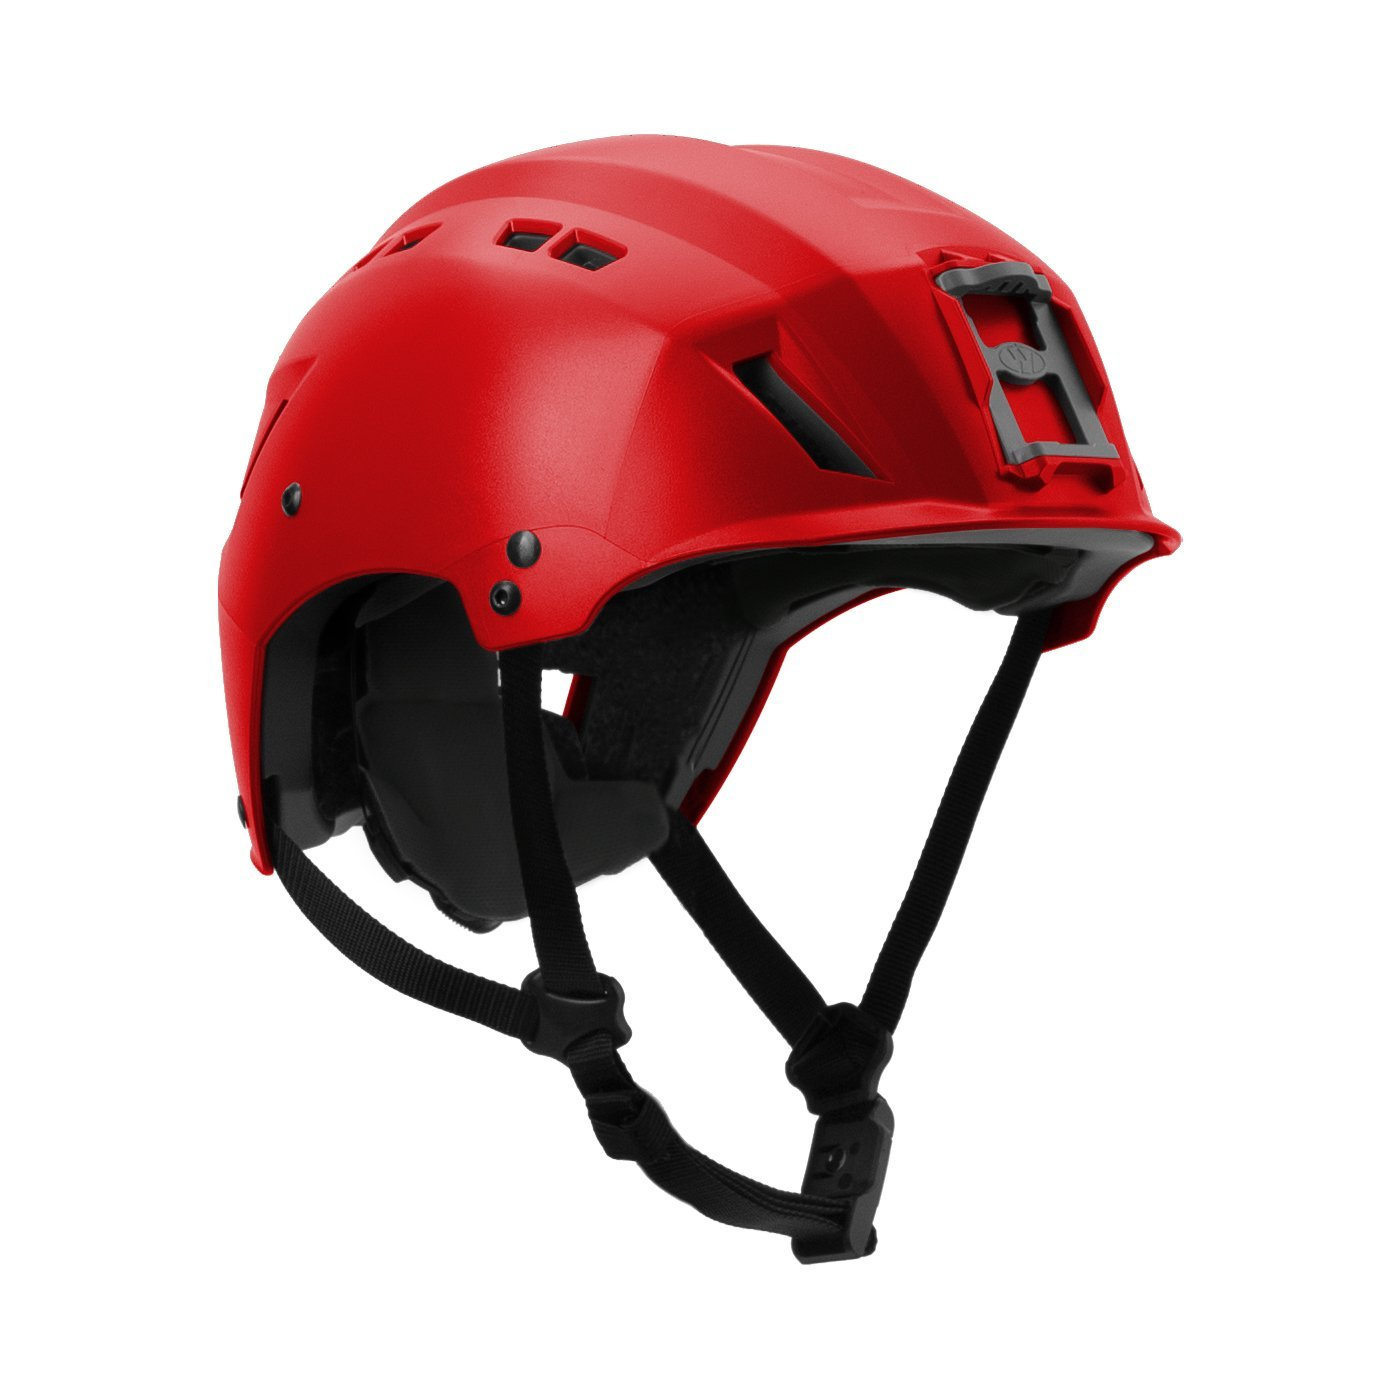 Team Wendy Helm EXFIL® SAR Backcountry Rot